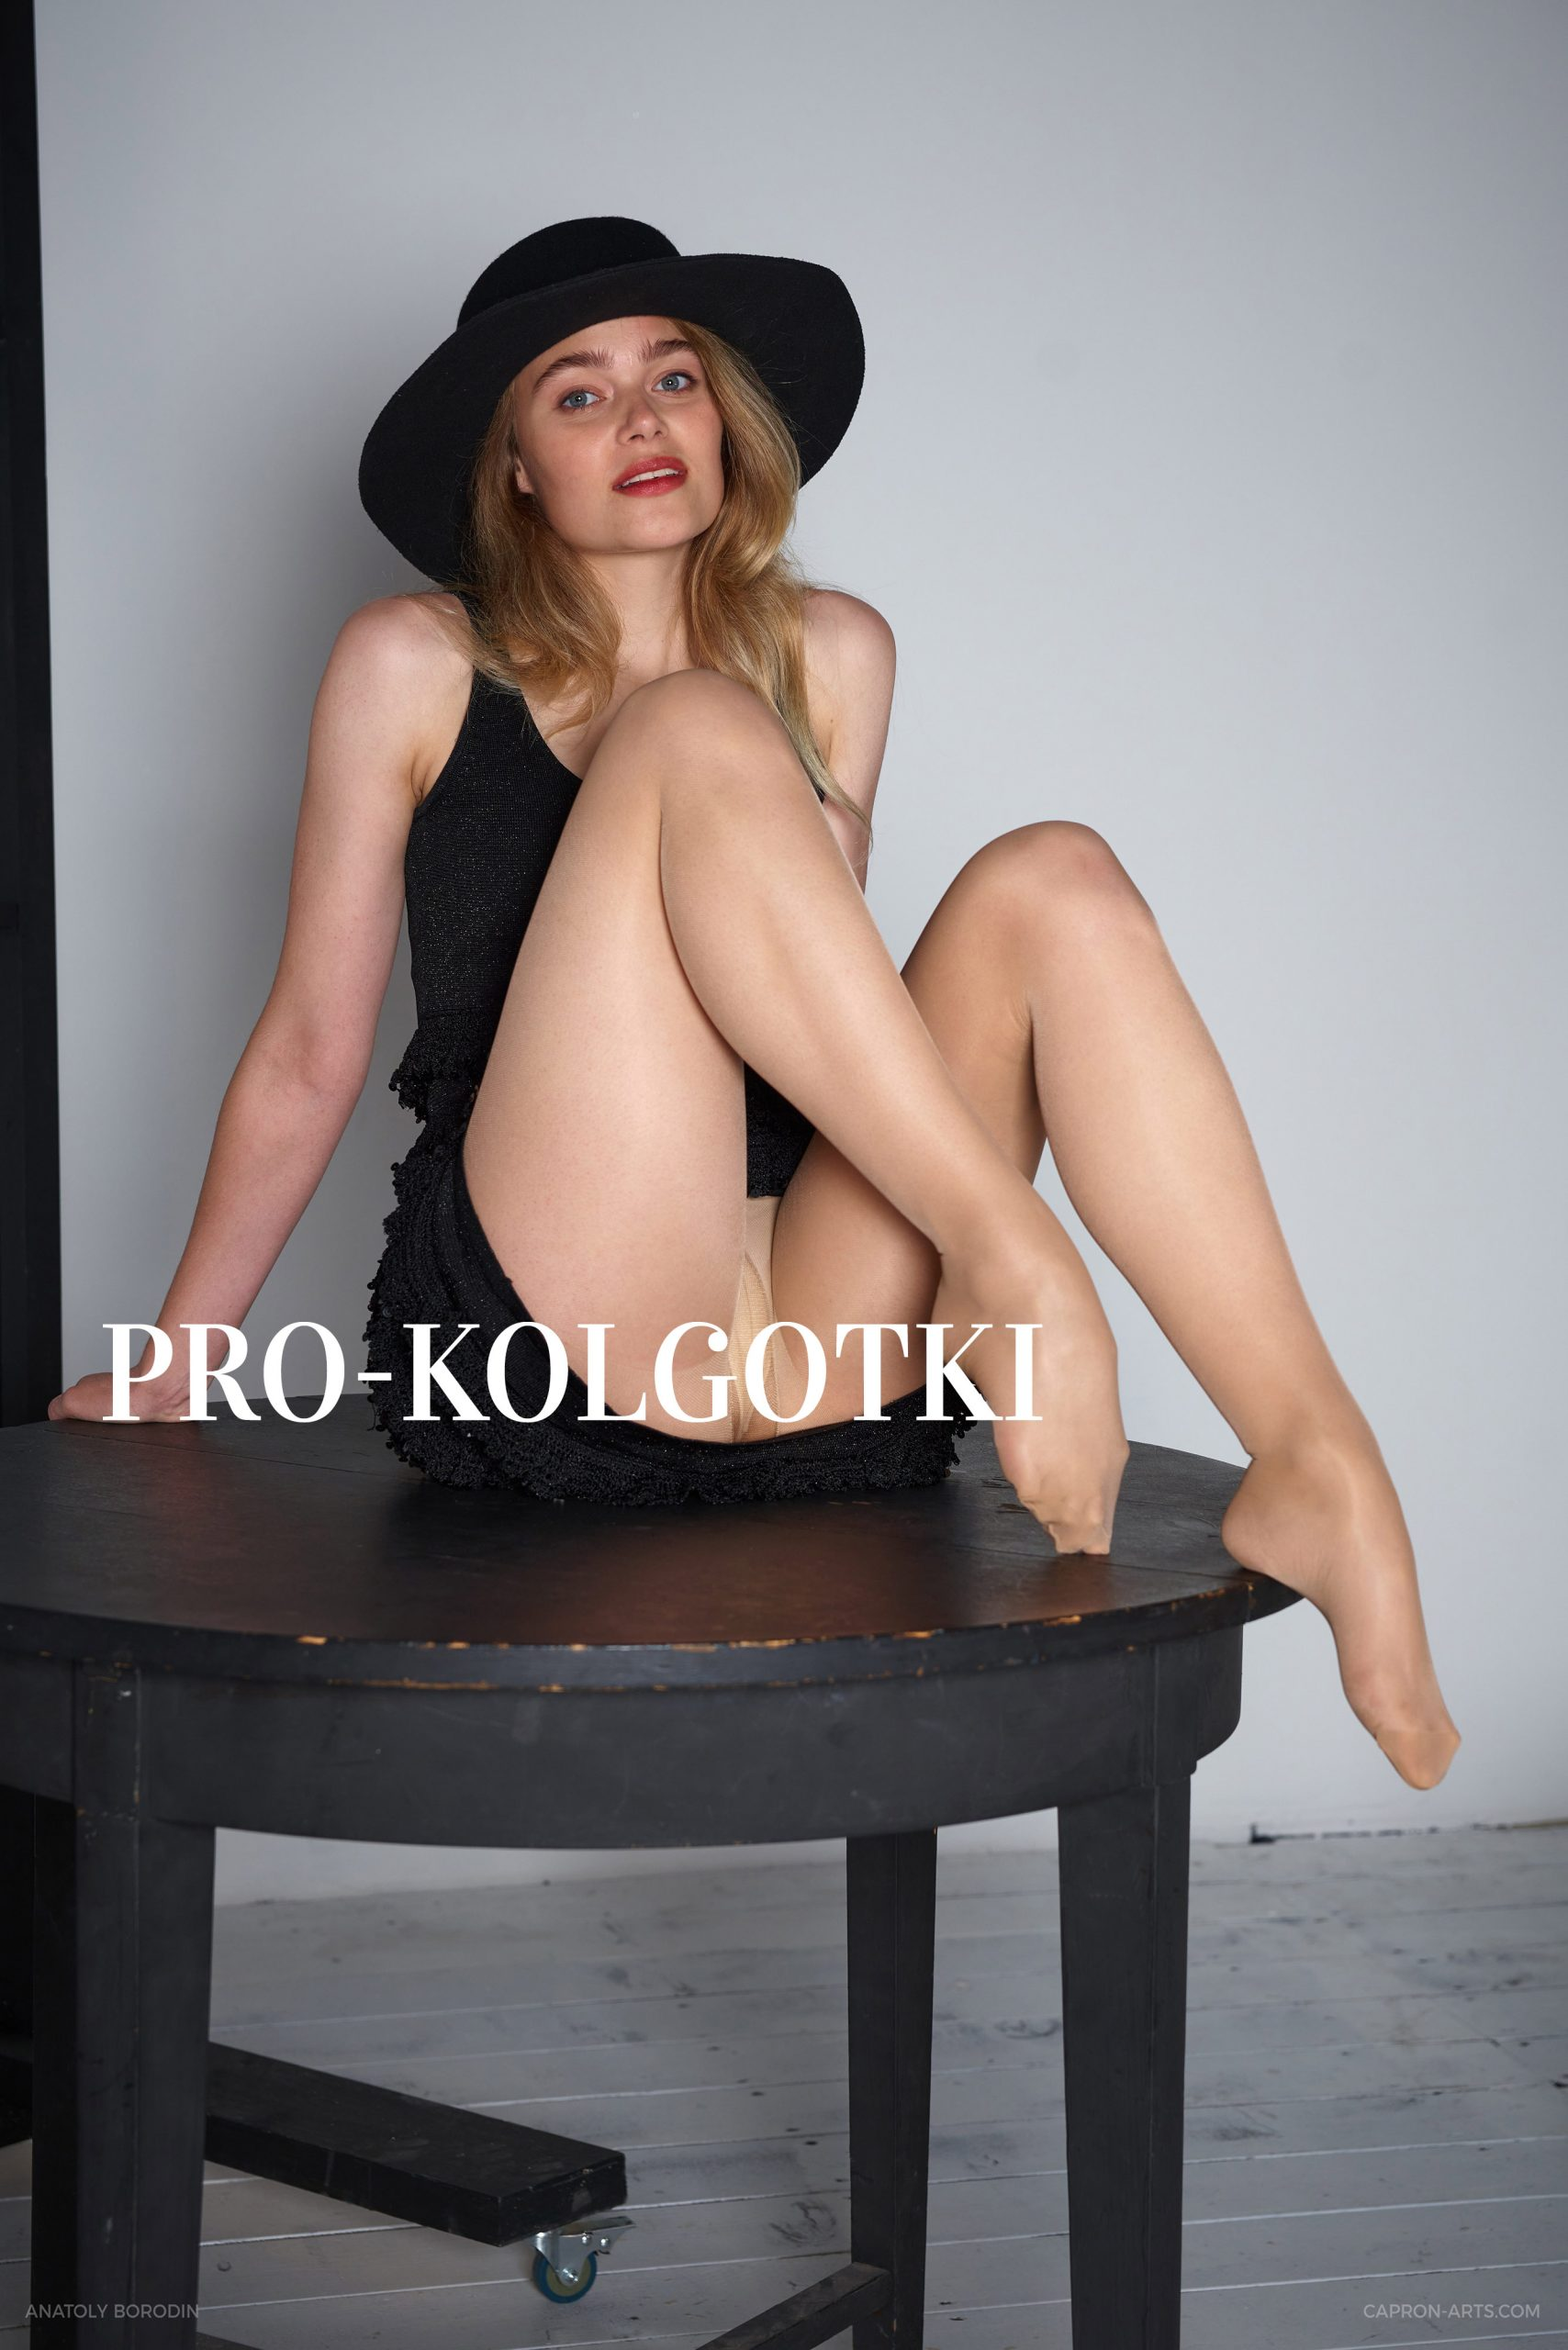 girls in pantyhose - photo from pro-kolgotki magazine November 2020 (part 2)